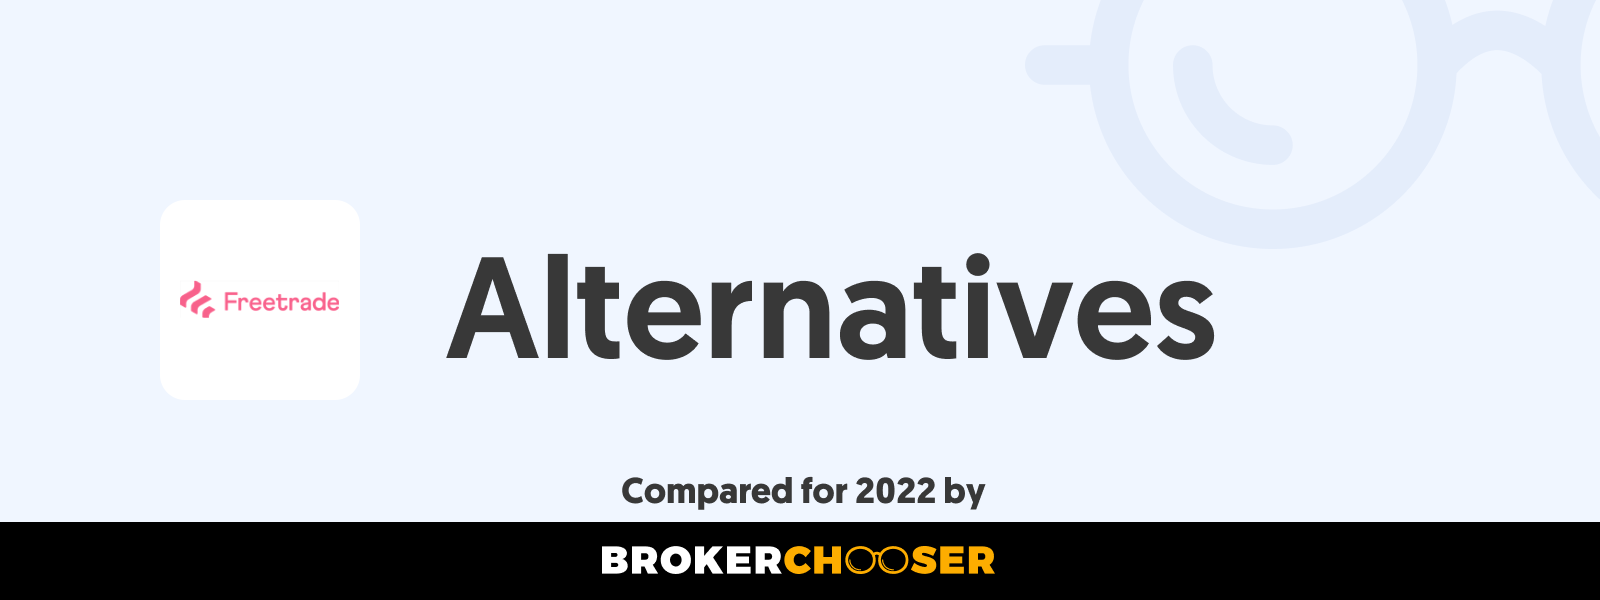 Freetrade Alternatives